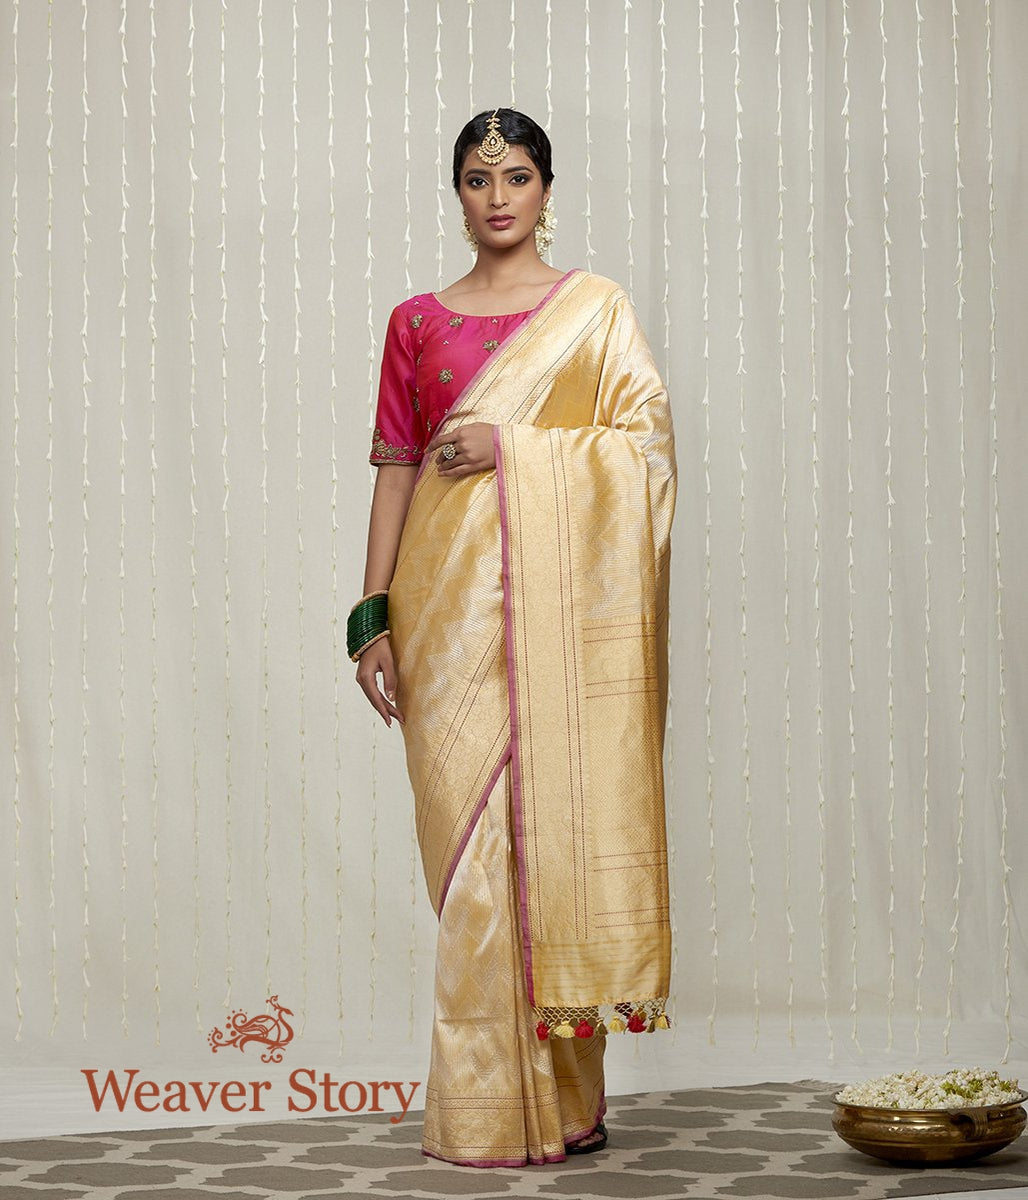 Handwoven Yellow and Gold Zari Tanchoi Saree with Pink Selvedge